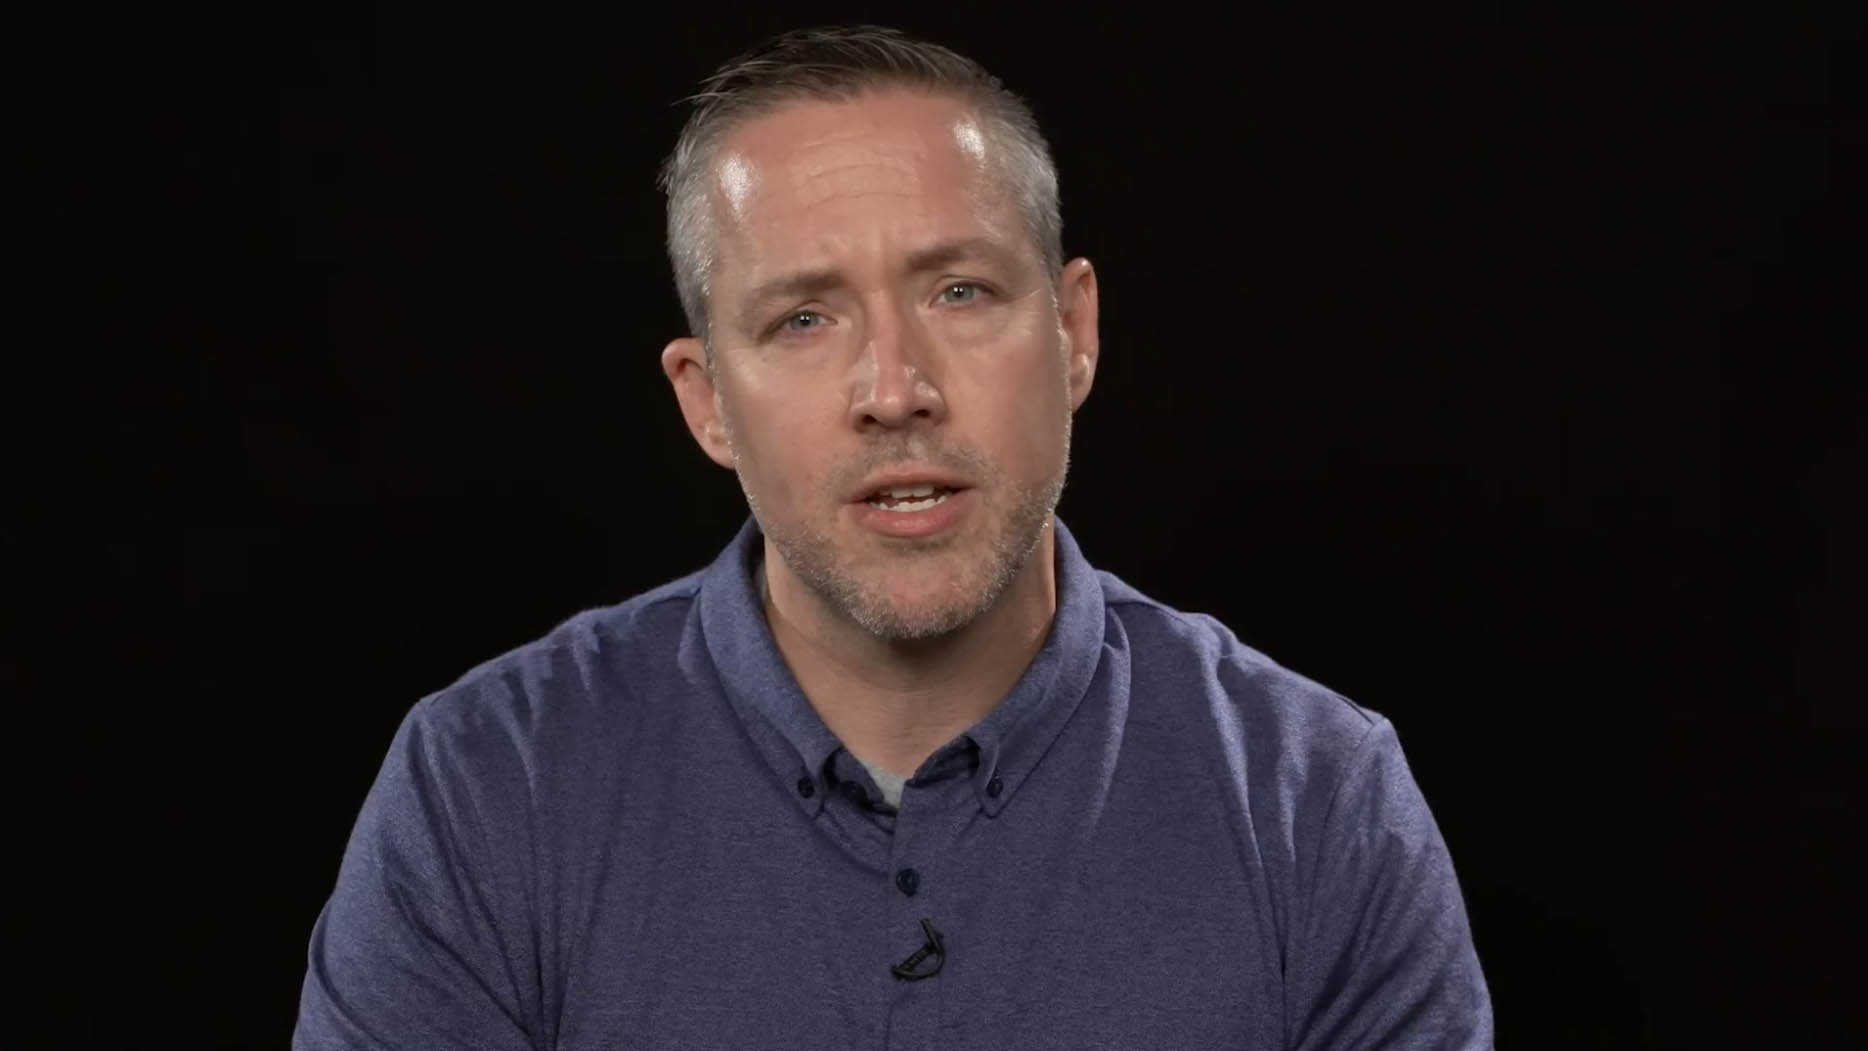 New video: @JDGreear, president of the Southern Baptist Convention and pastor of @SummitRDU, weighs in on whether God still speaks audibly. https://t.co/eZbpI9hKFn